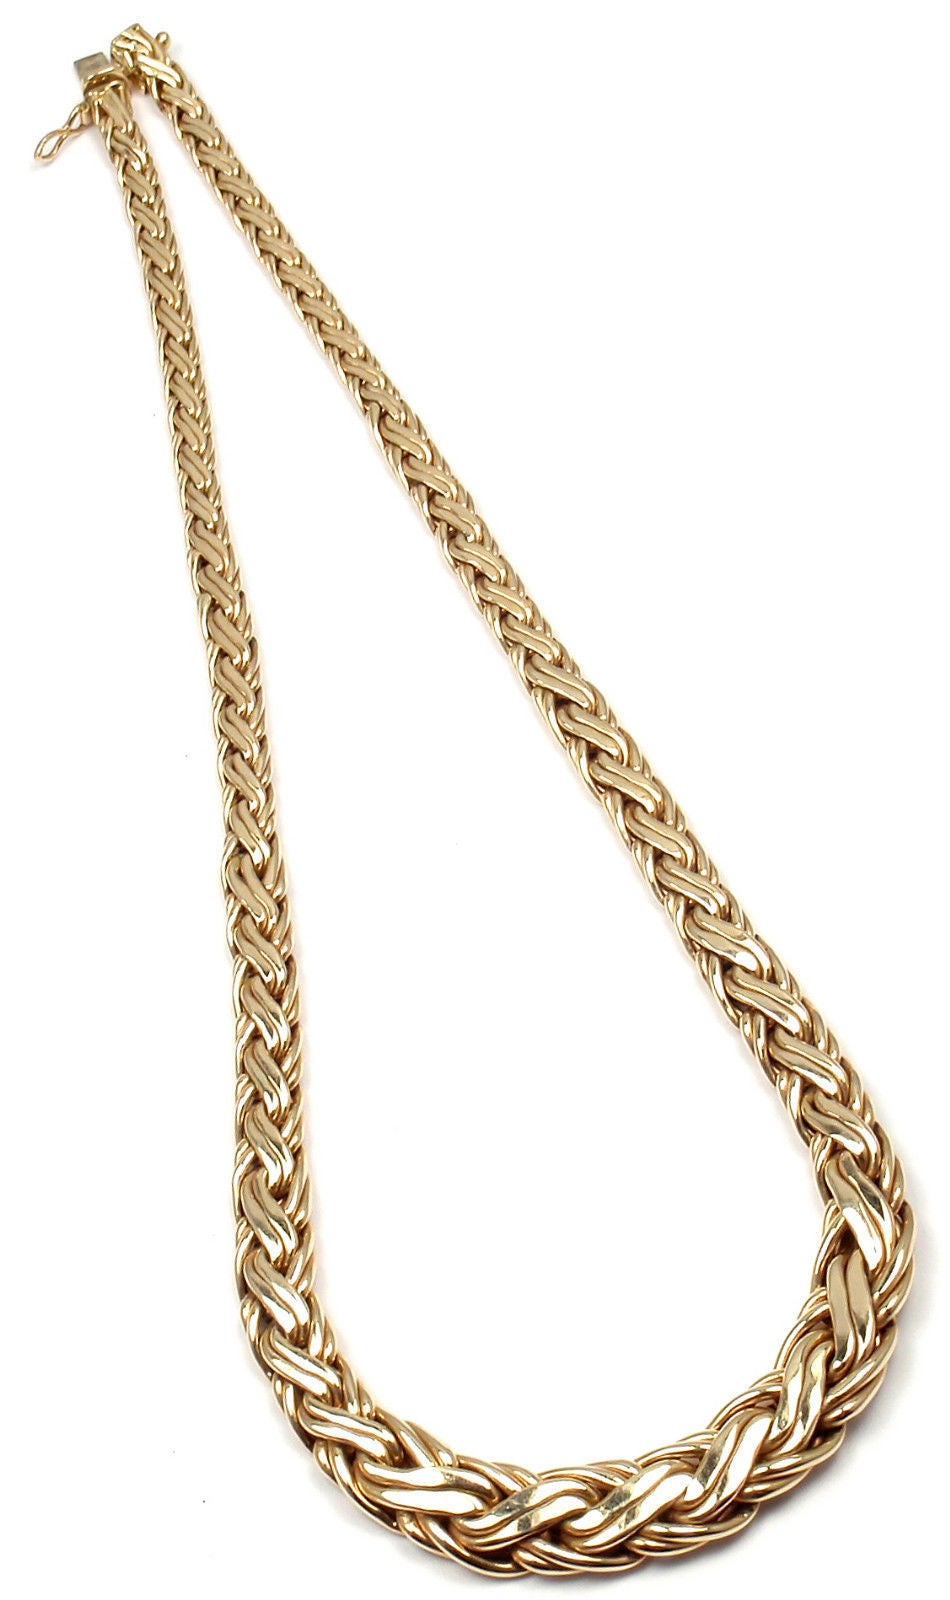 Tiffany & Co. Russian Weave Chain Link Yellow Gold Necklace 1